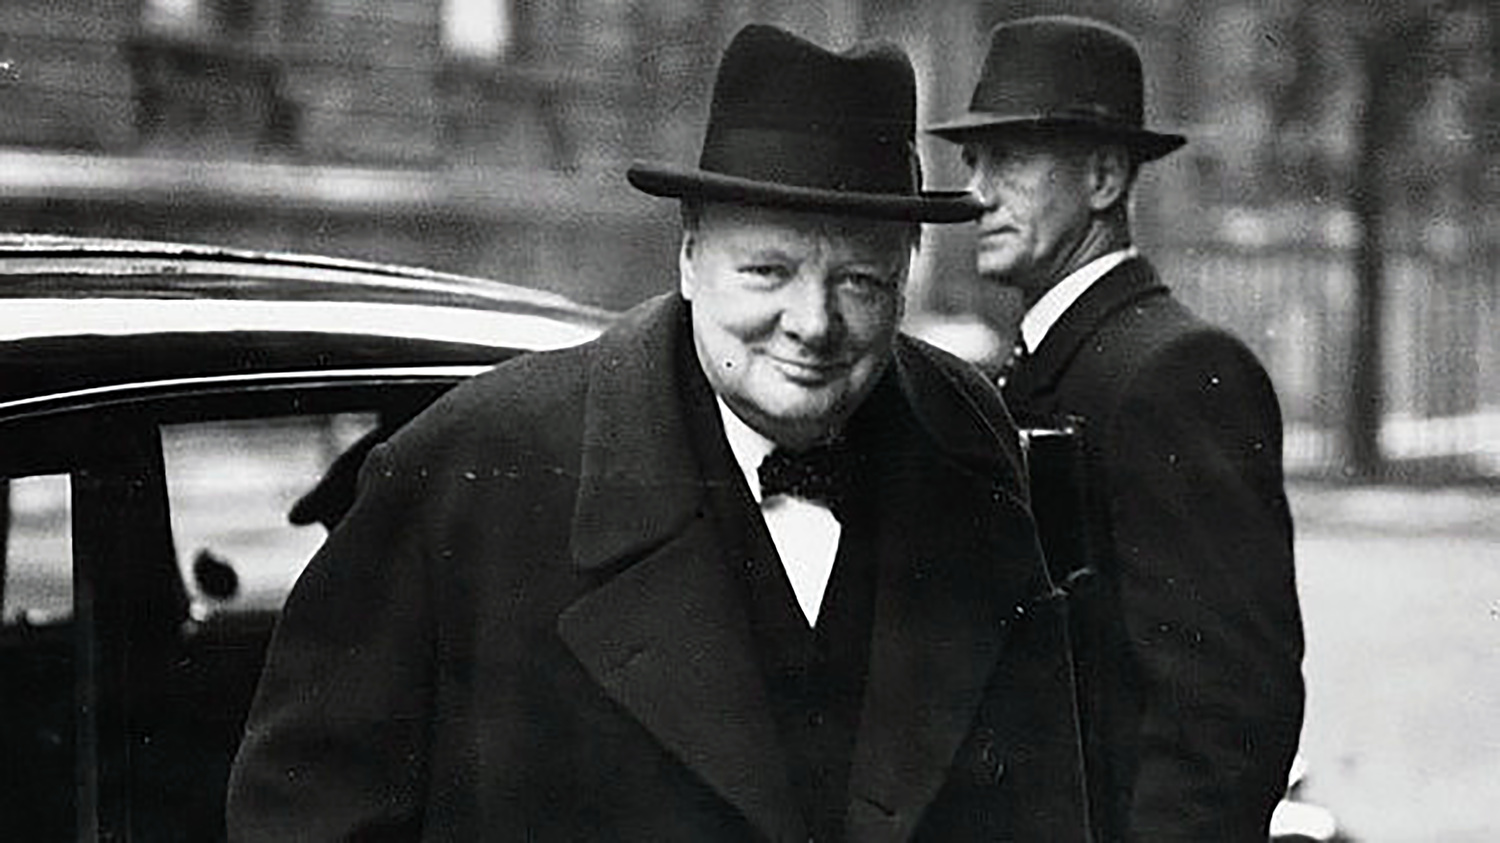 Winston Churchill on his way to the House of Commons, February 1943